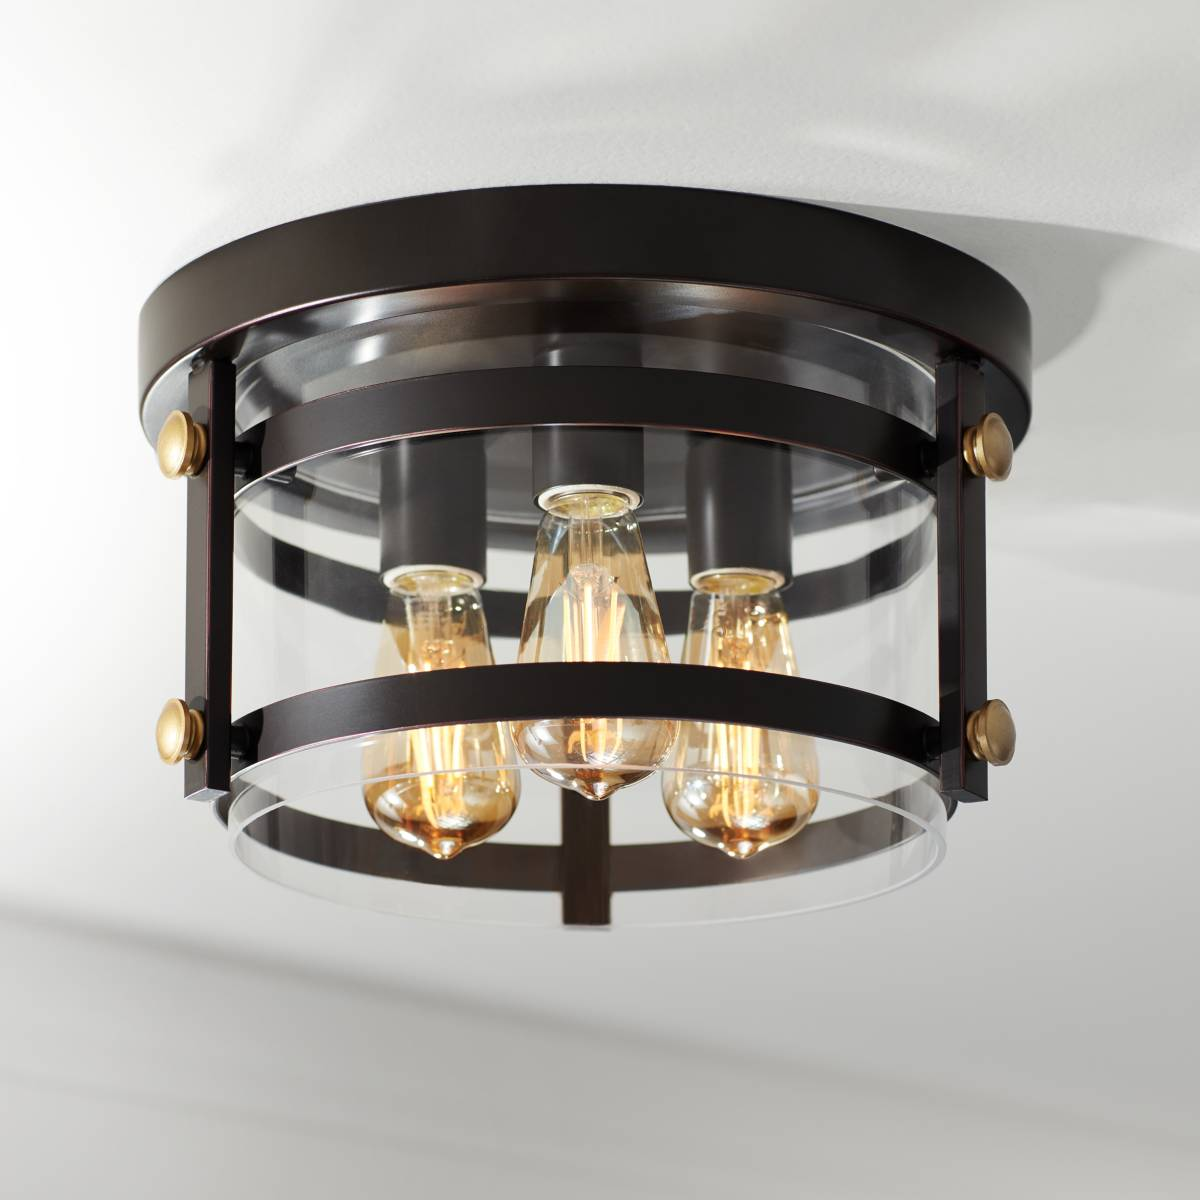 Celing Light Fixtures: Energy Efficient Ceiling Lights